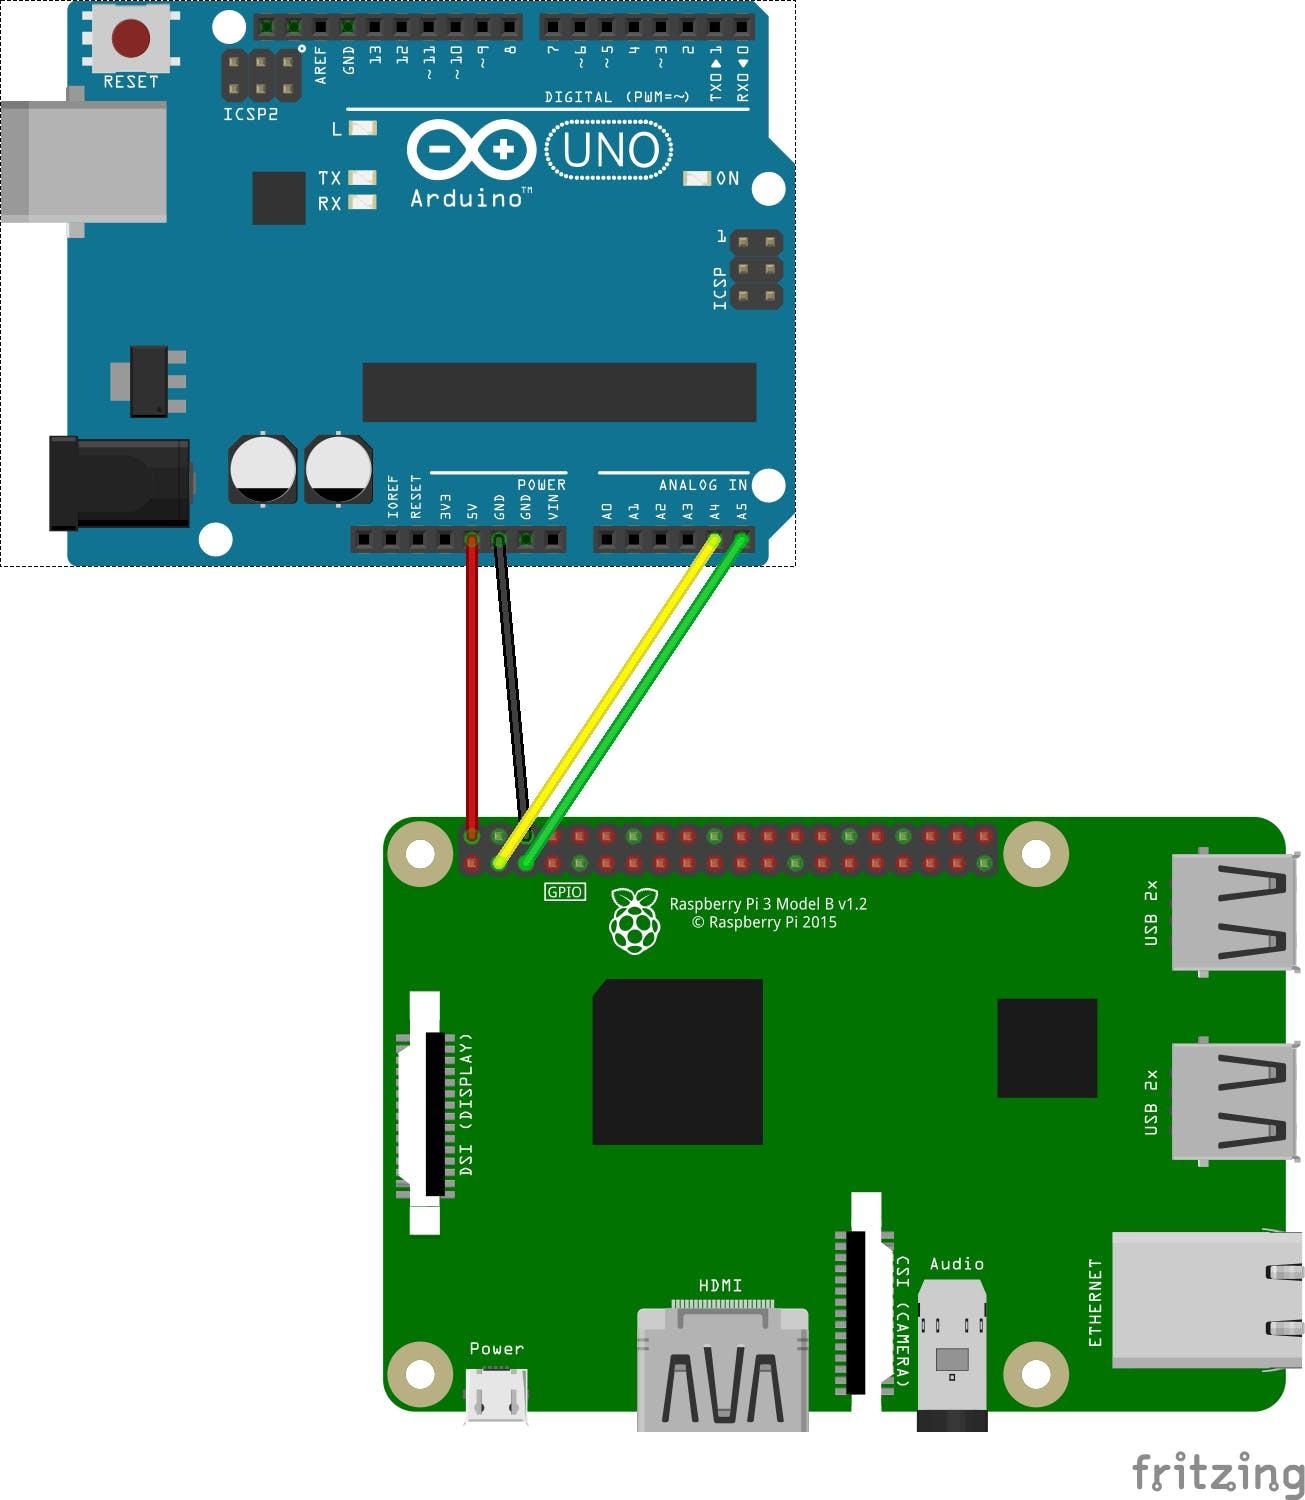 Controlling an Arduino from a Pi3 using I2C